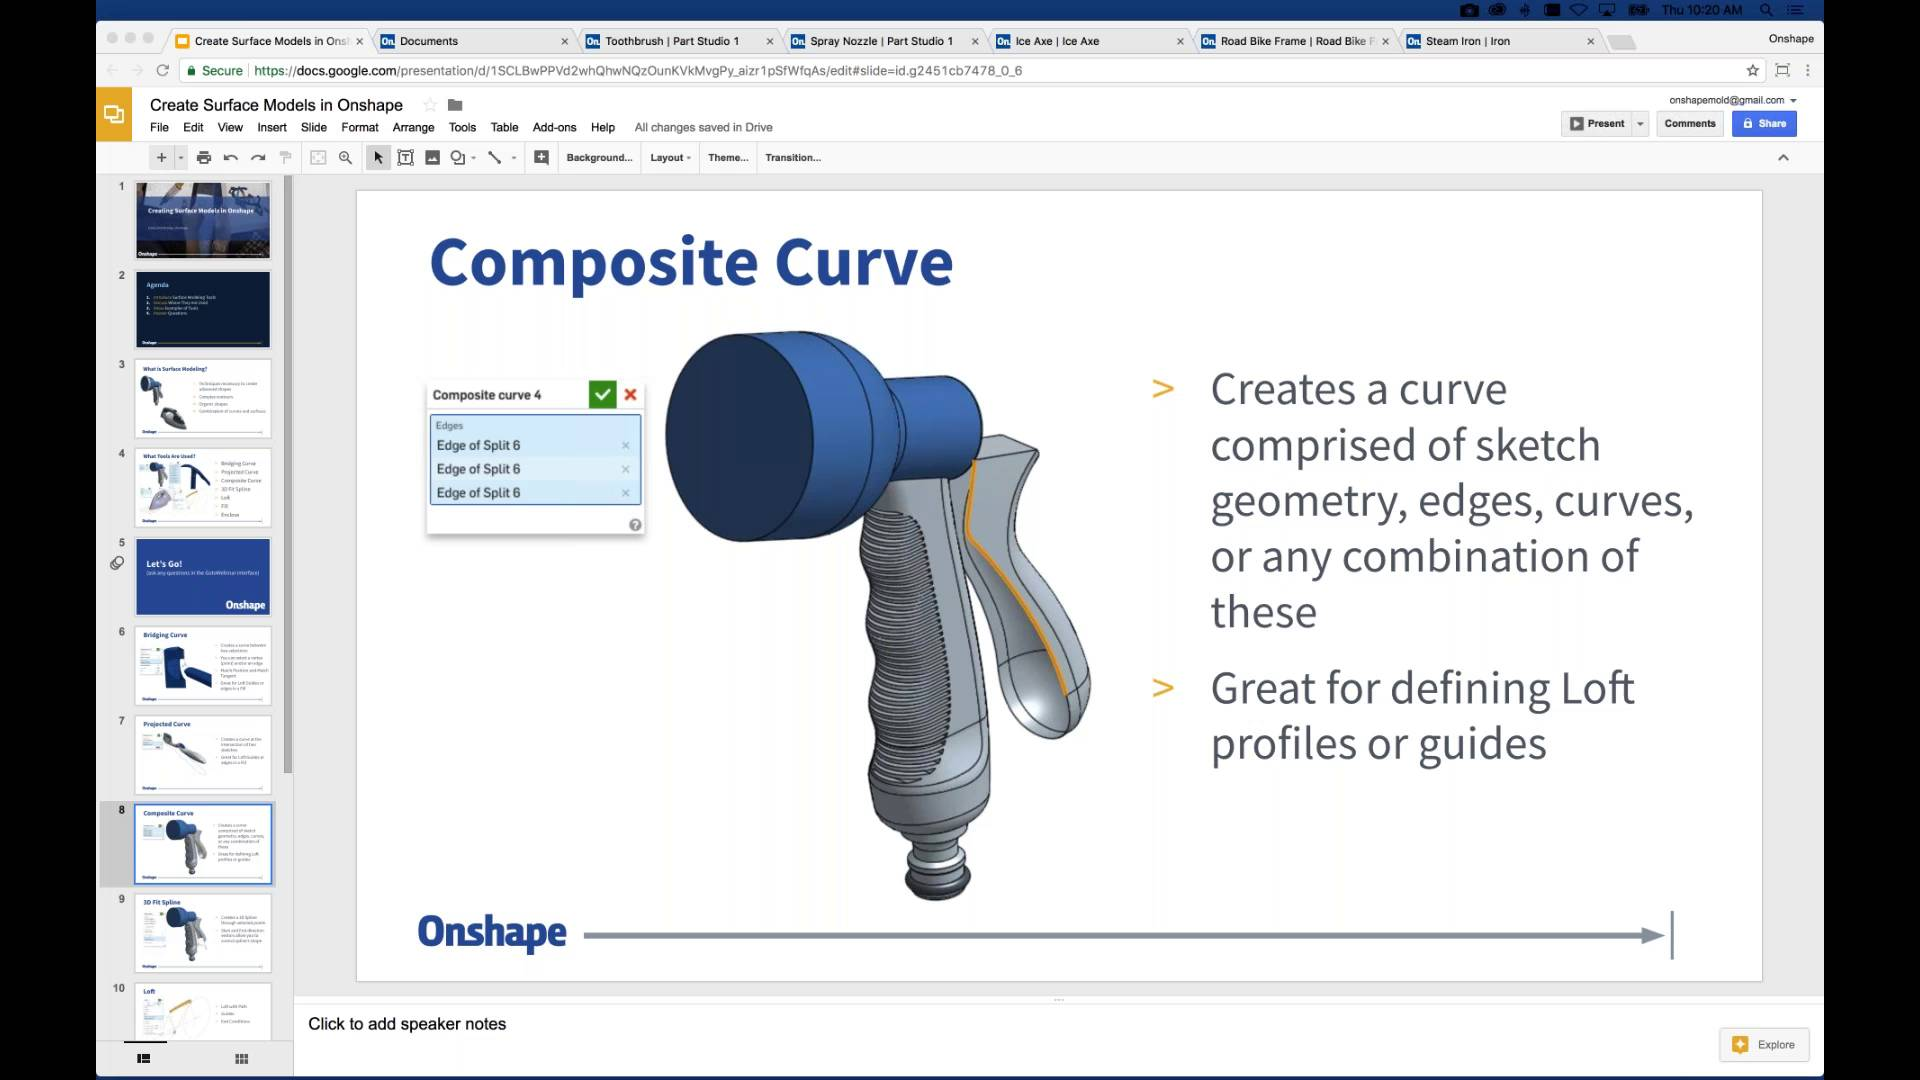 Creating Surface Models in Onshape on